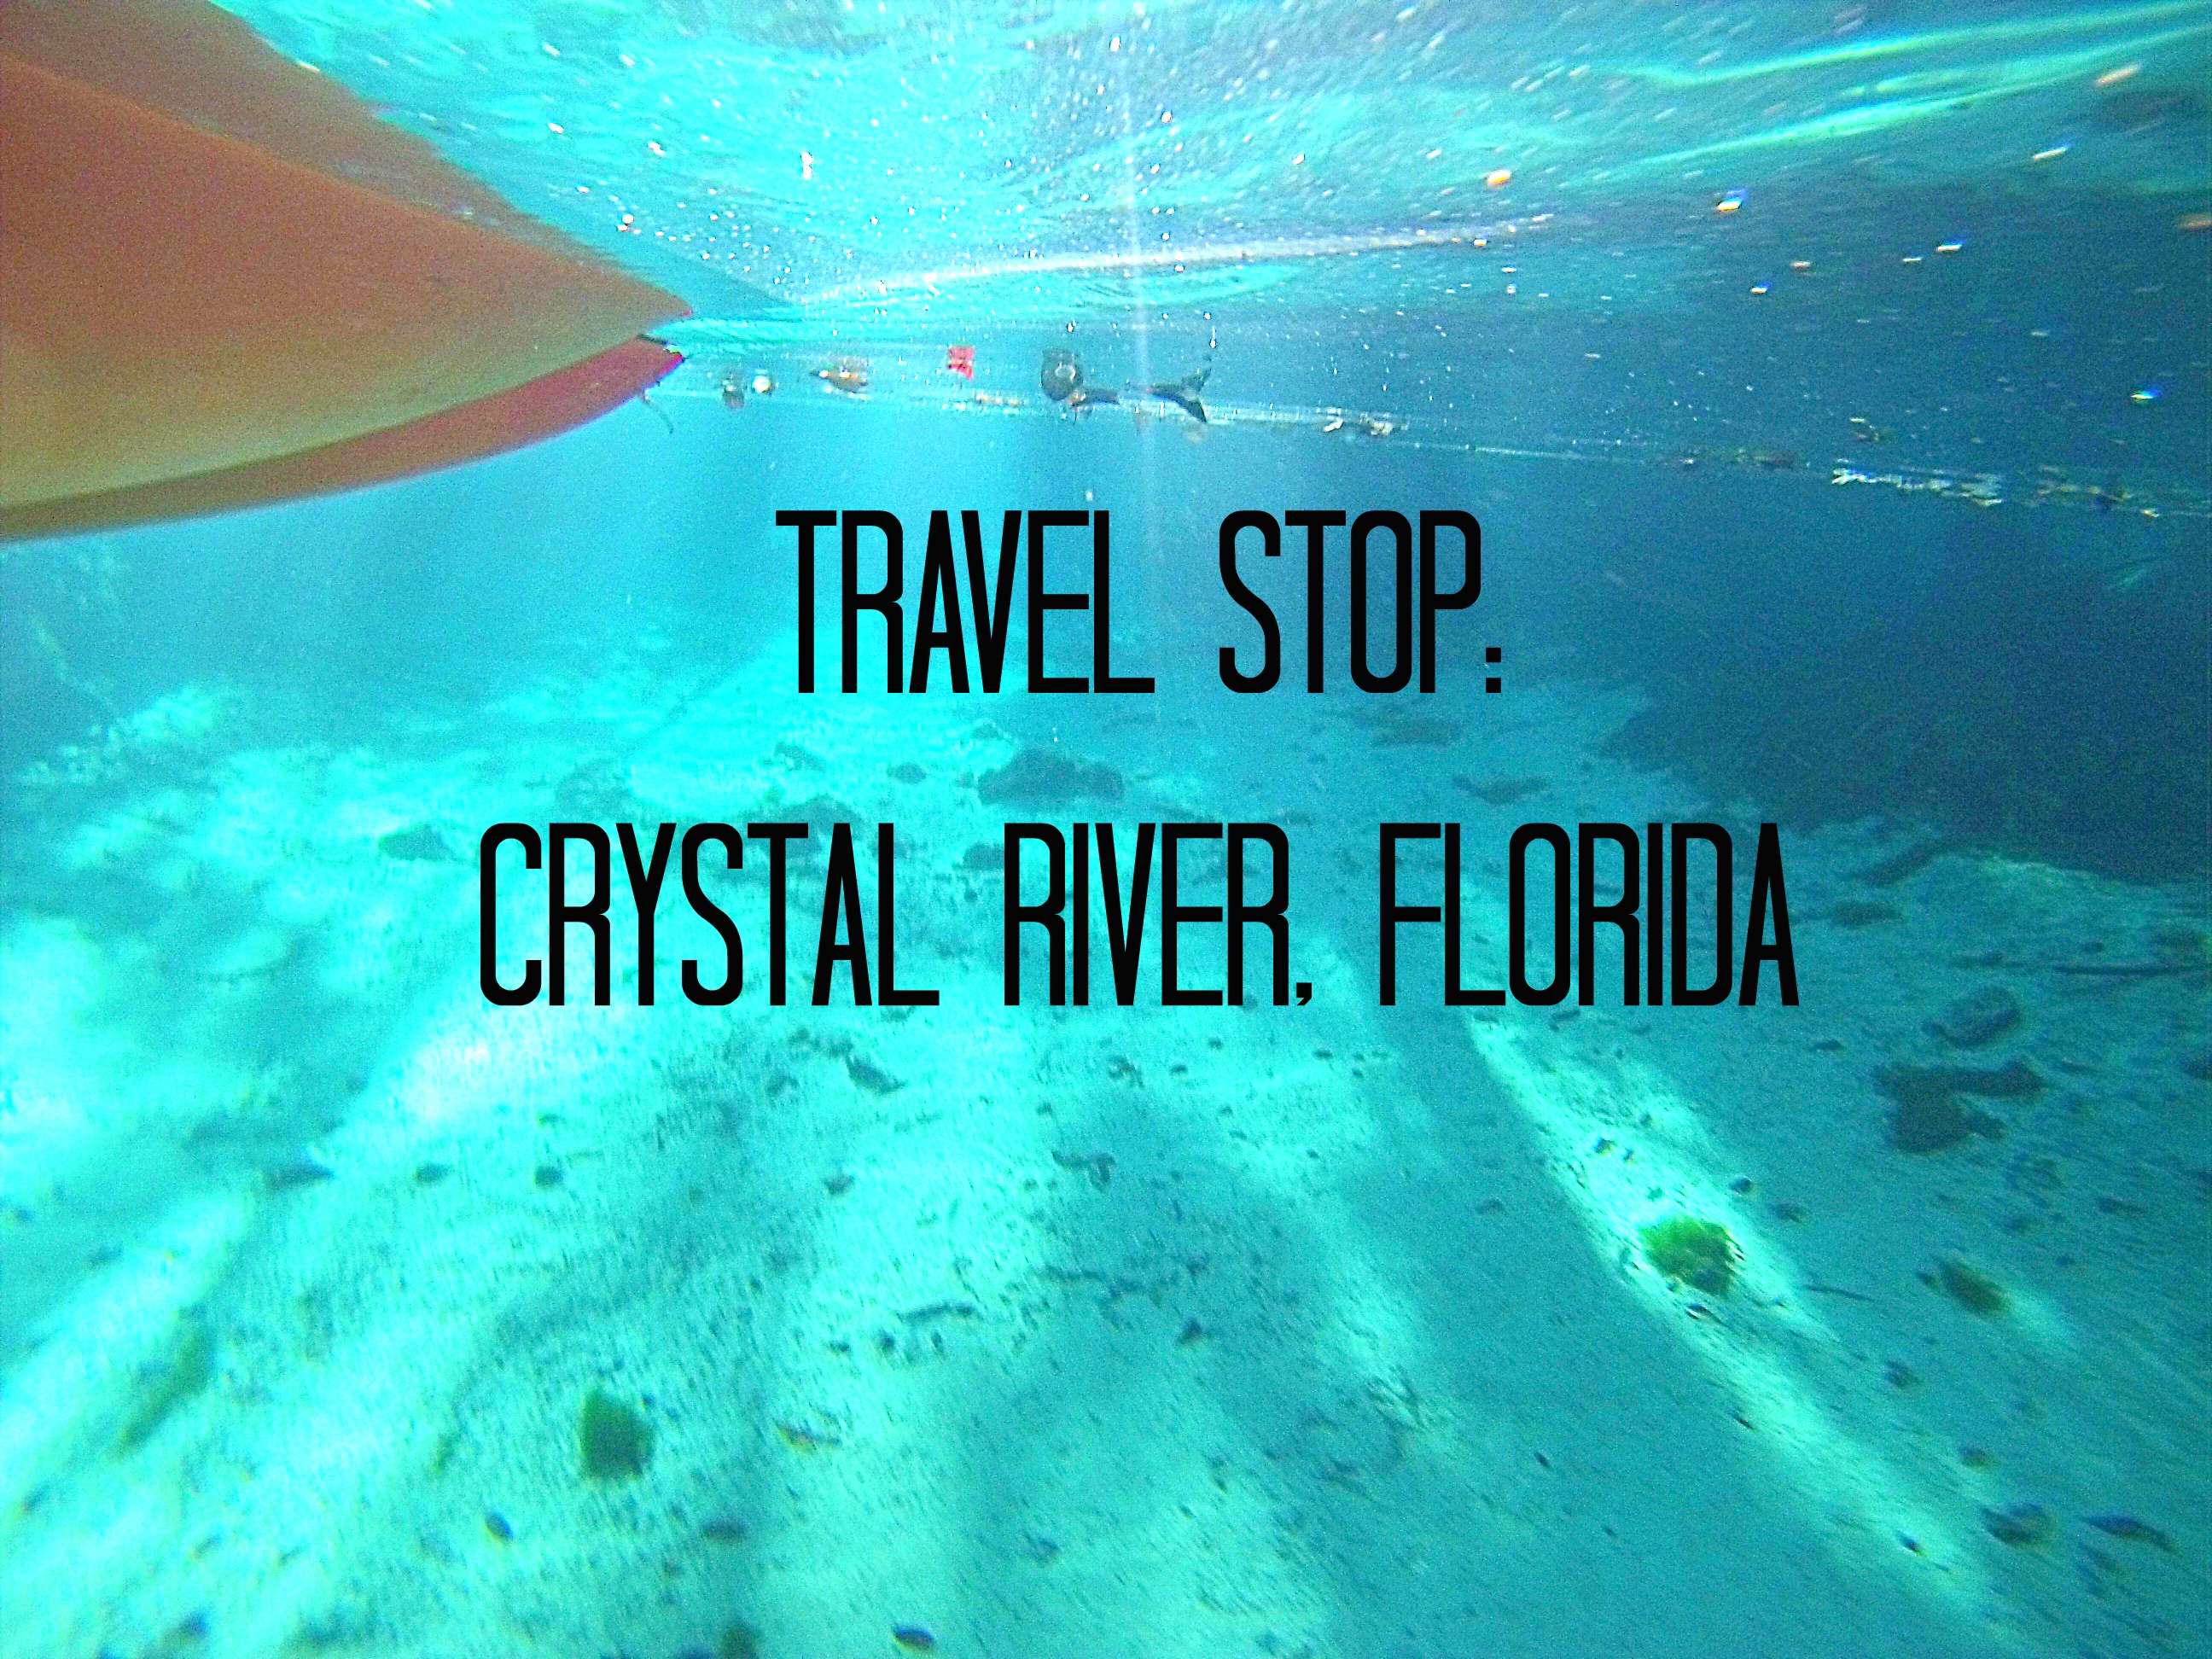 Travel Stop: Crystal River, Florida